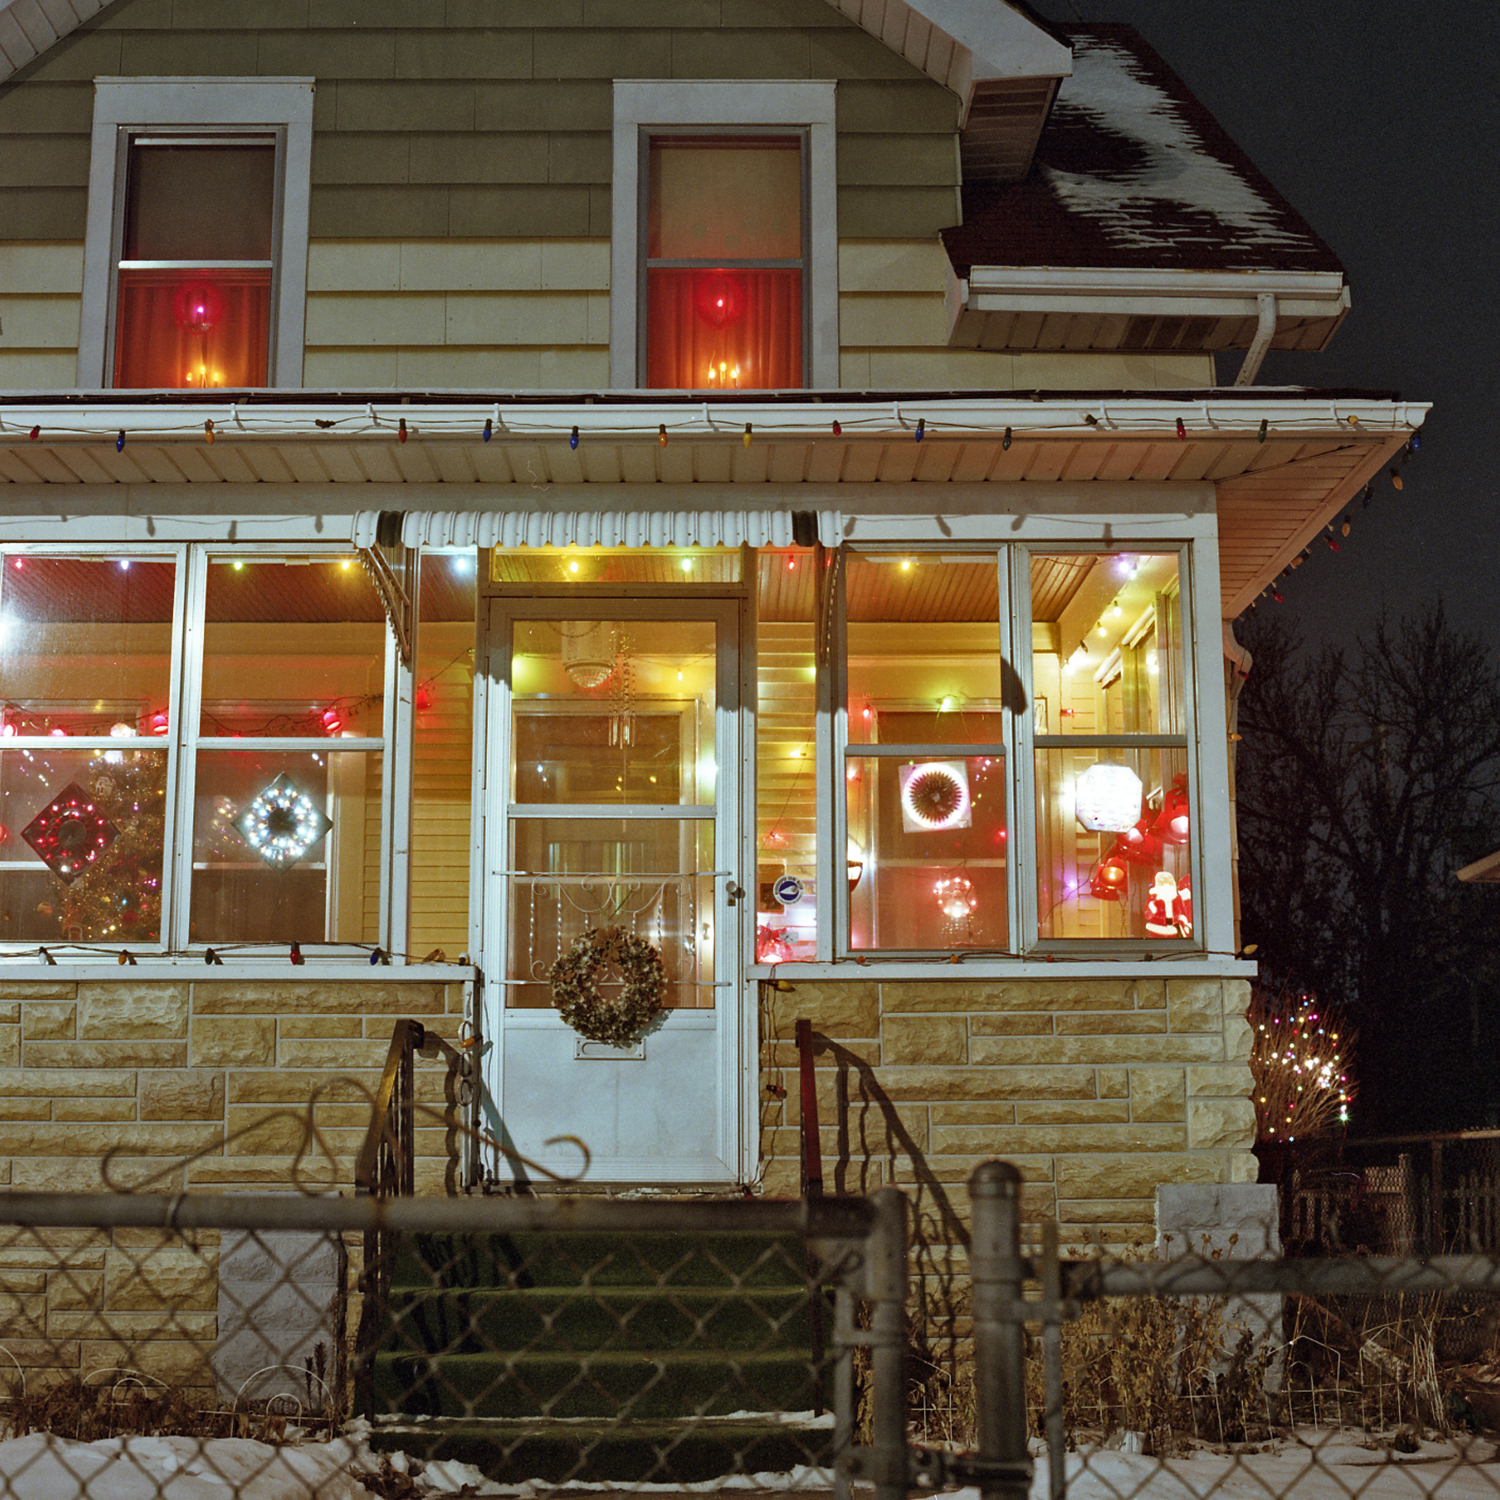 Aurora Avenue, Saint Paul, Minnesota. January 1990. Series of modest homes in the Frogtown neighborhood illuminated by Christmas lights still in their display boxes; an efficient method for seasonal decorating!